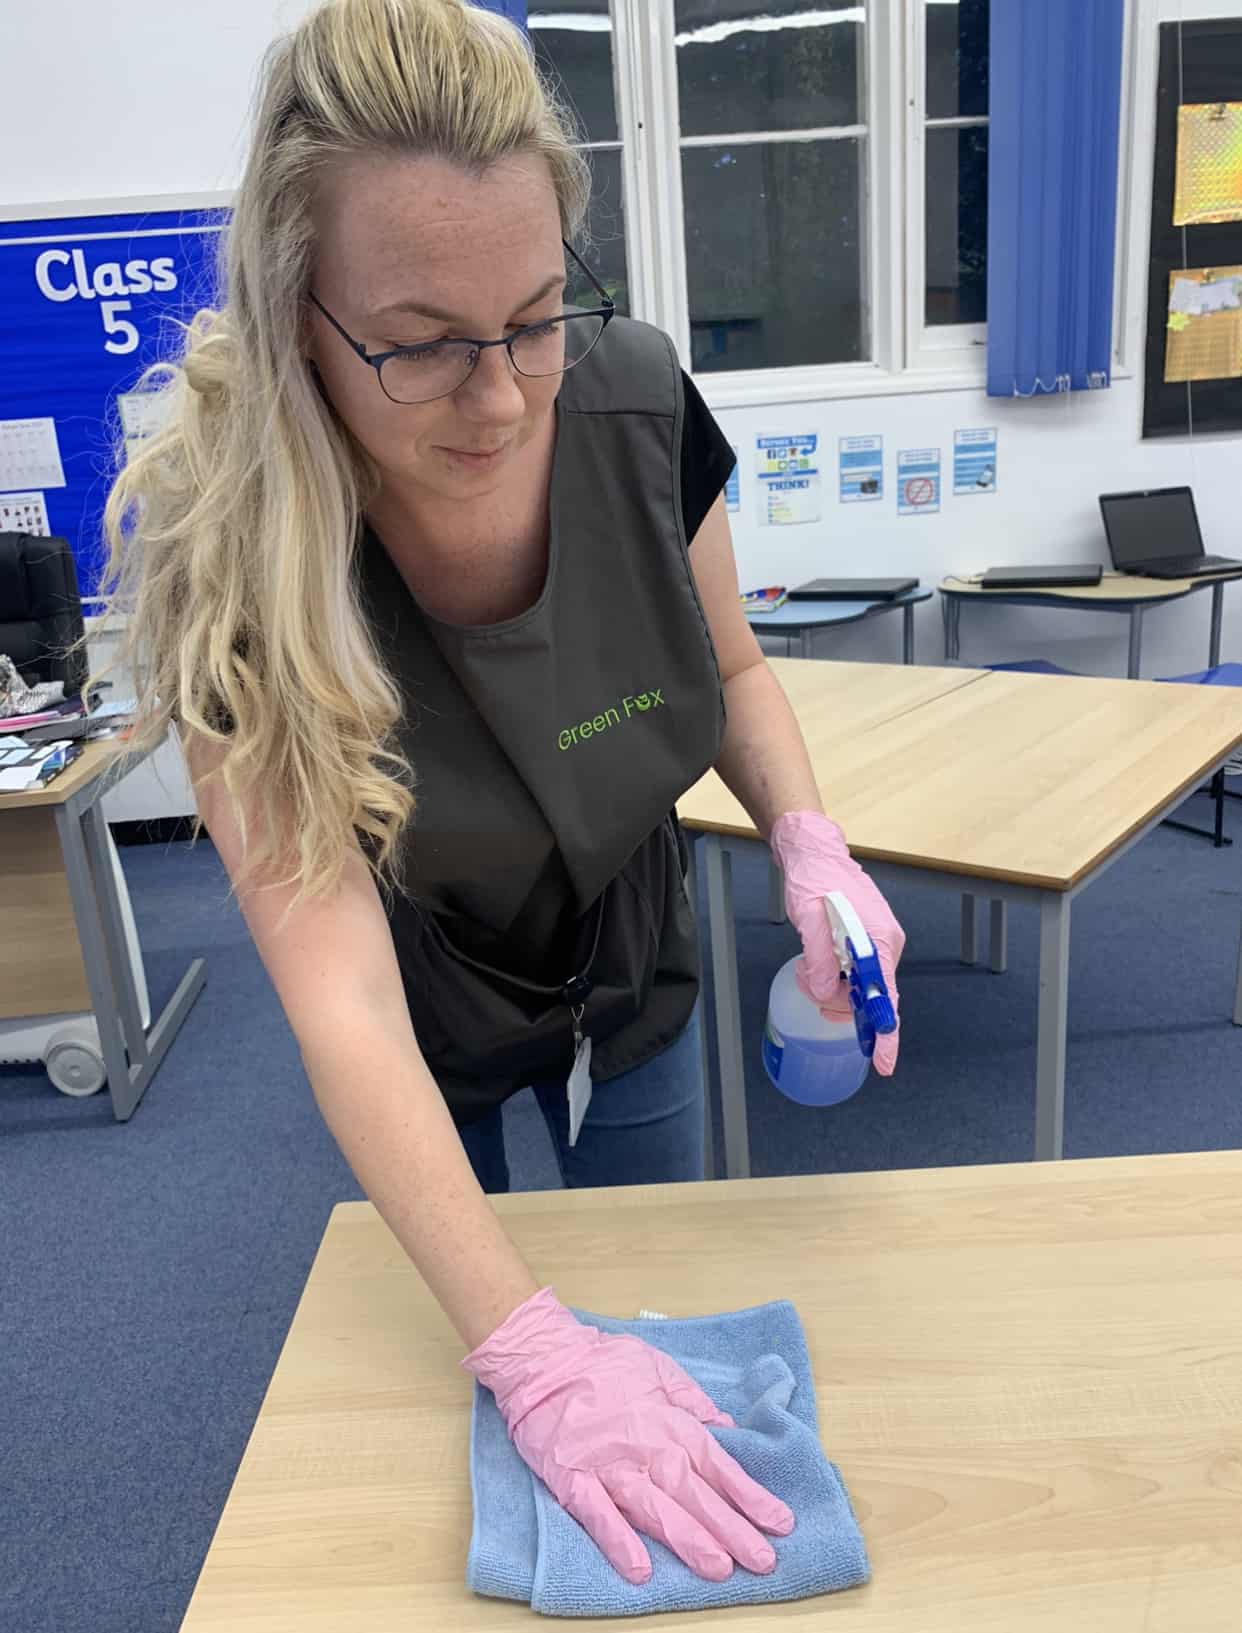 Green Fox employee completing school cleaning services